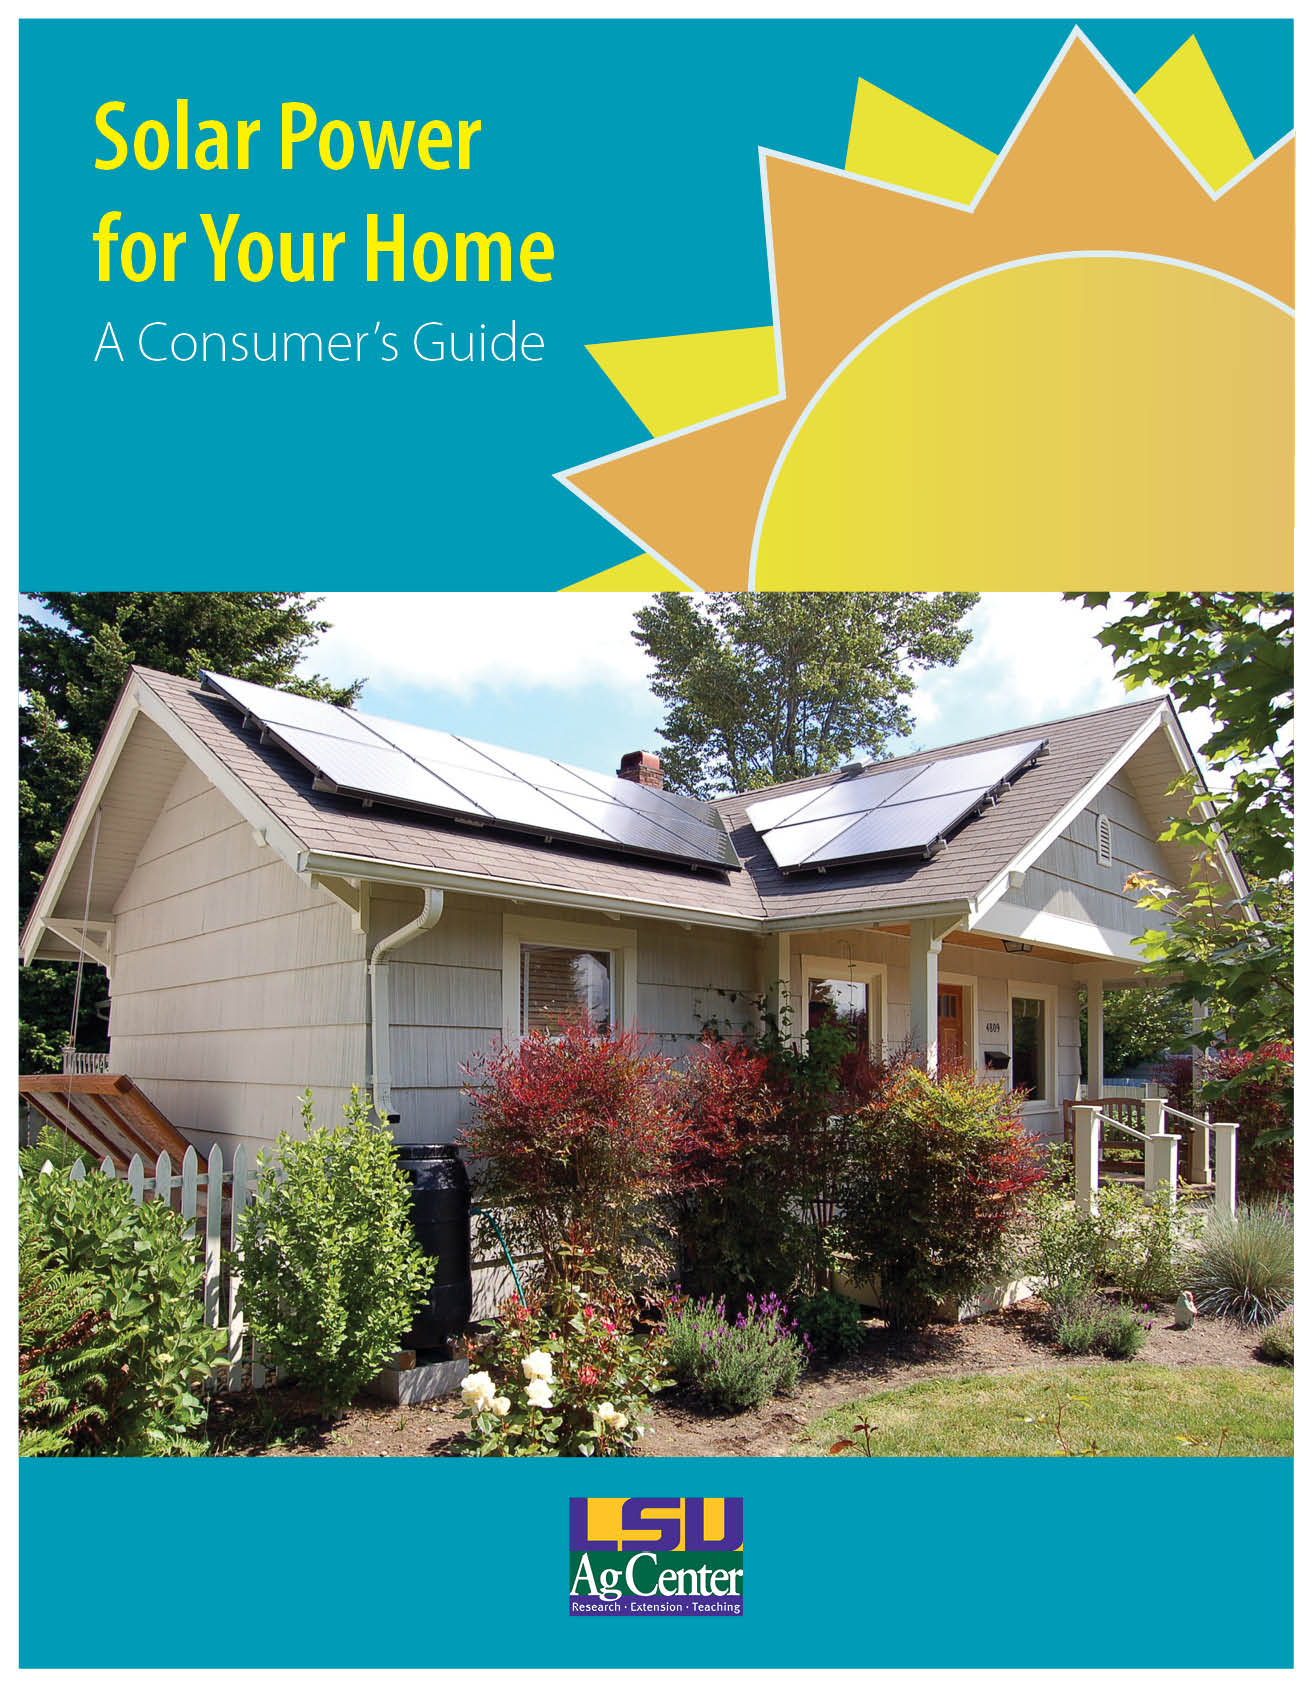 New free guide to solar power for your home now available